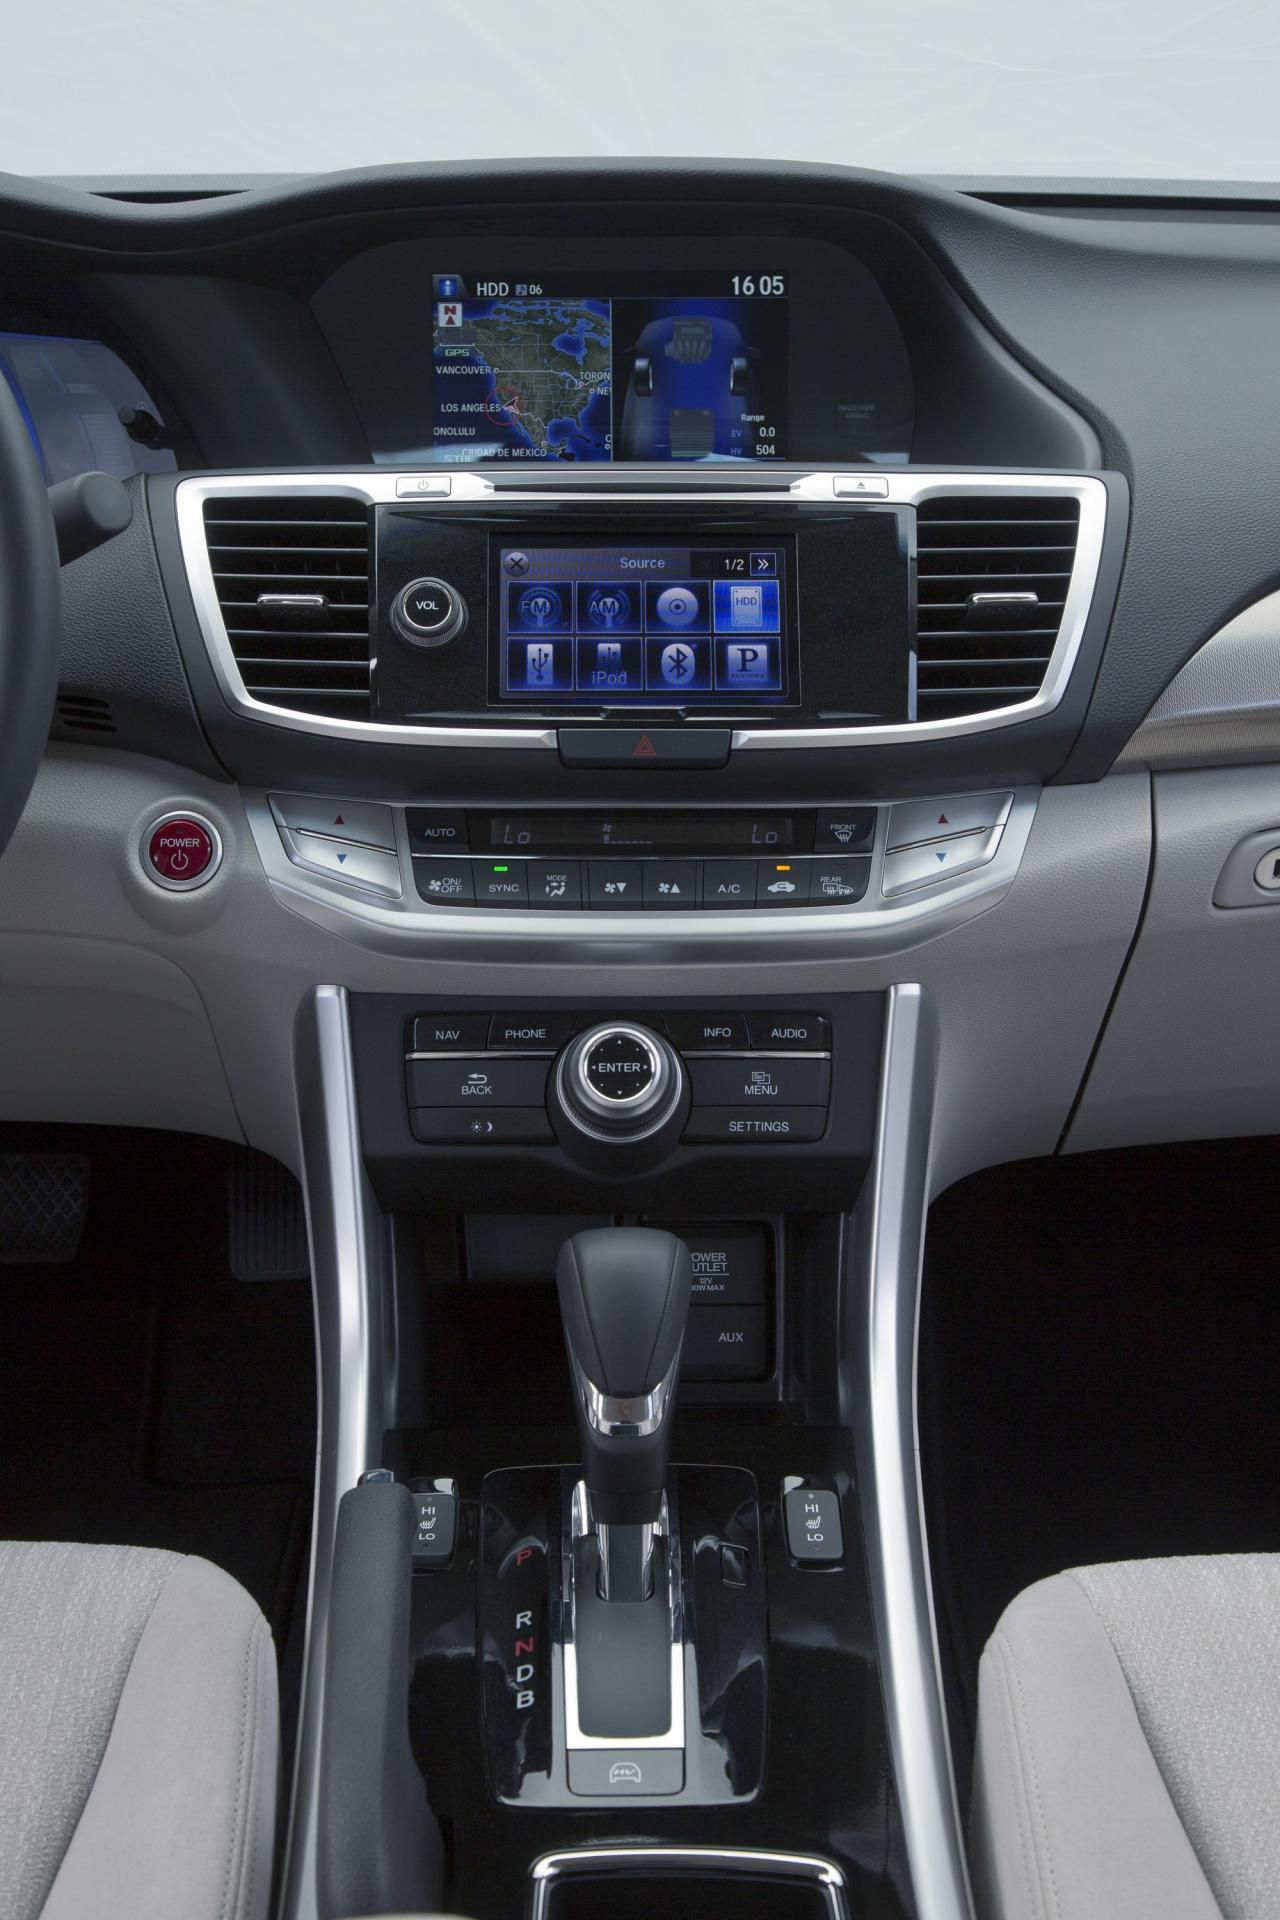 2014 Honda Accord PHEV Interior